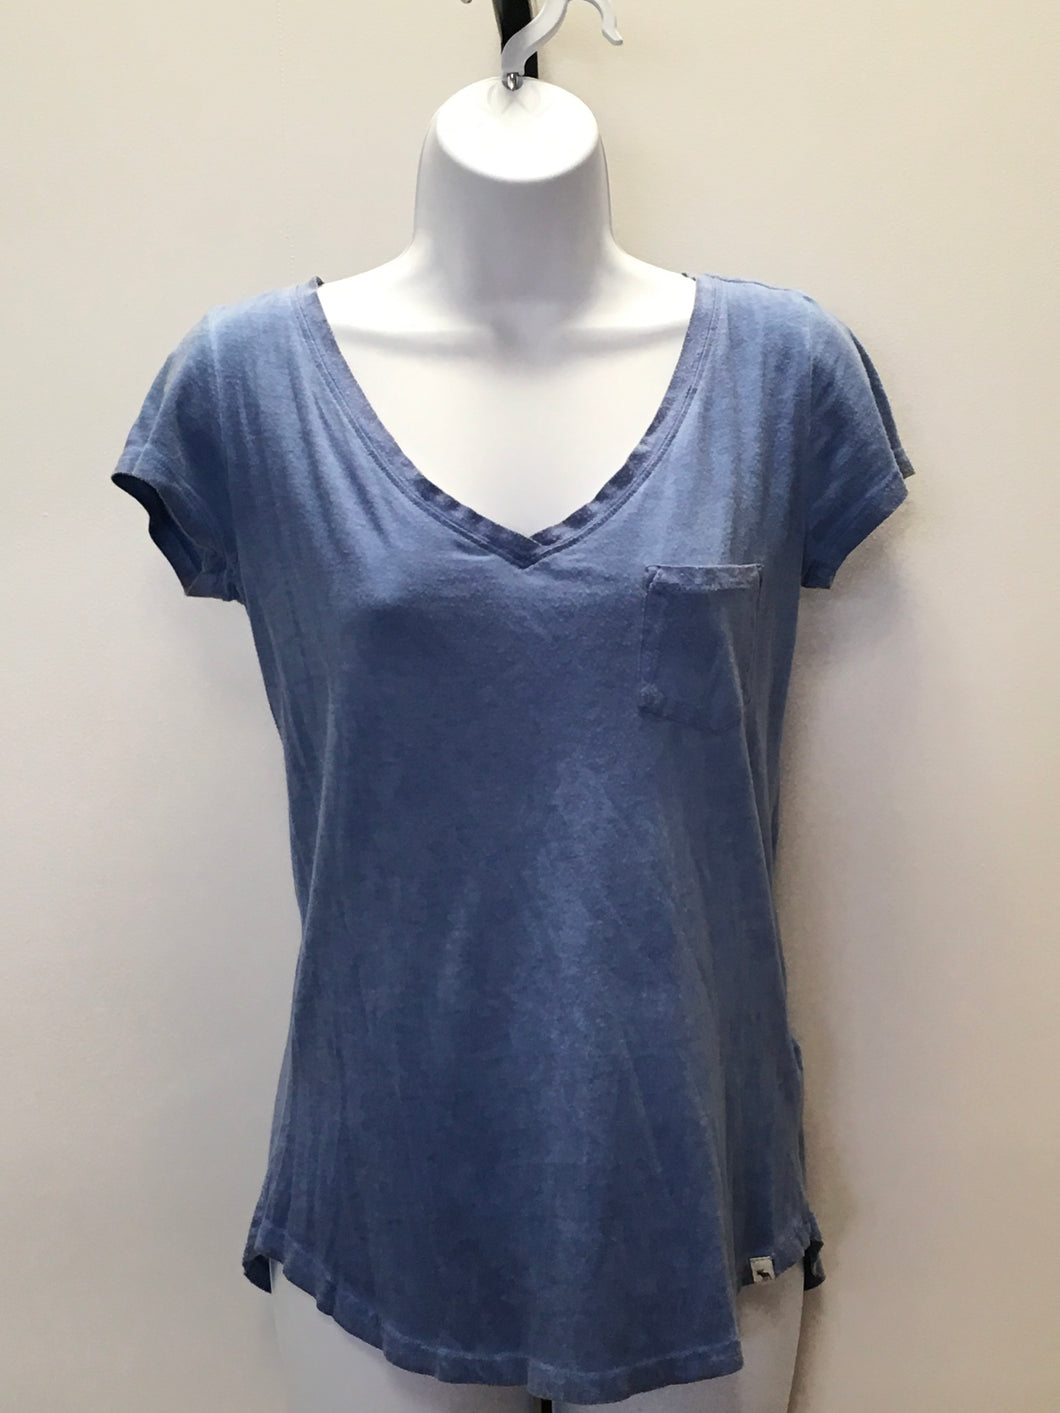 C14-4 Abercrombie & Fitch Blue T-Shirt